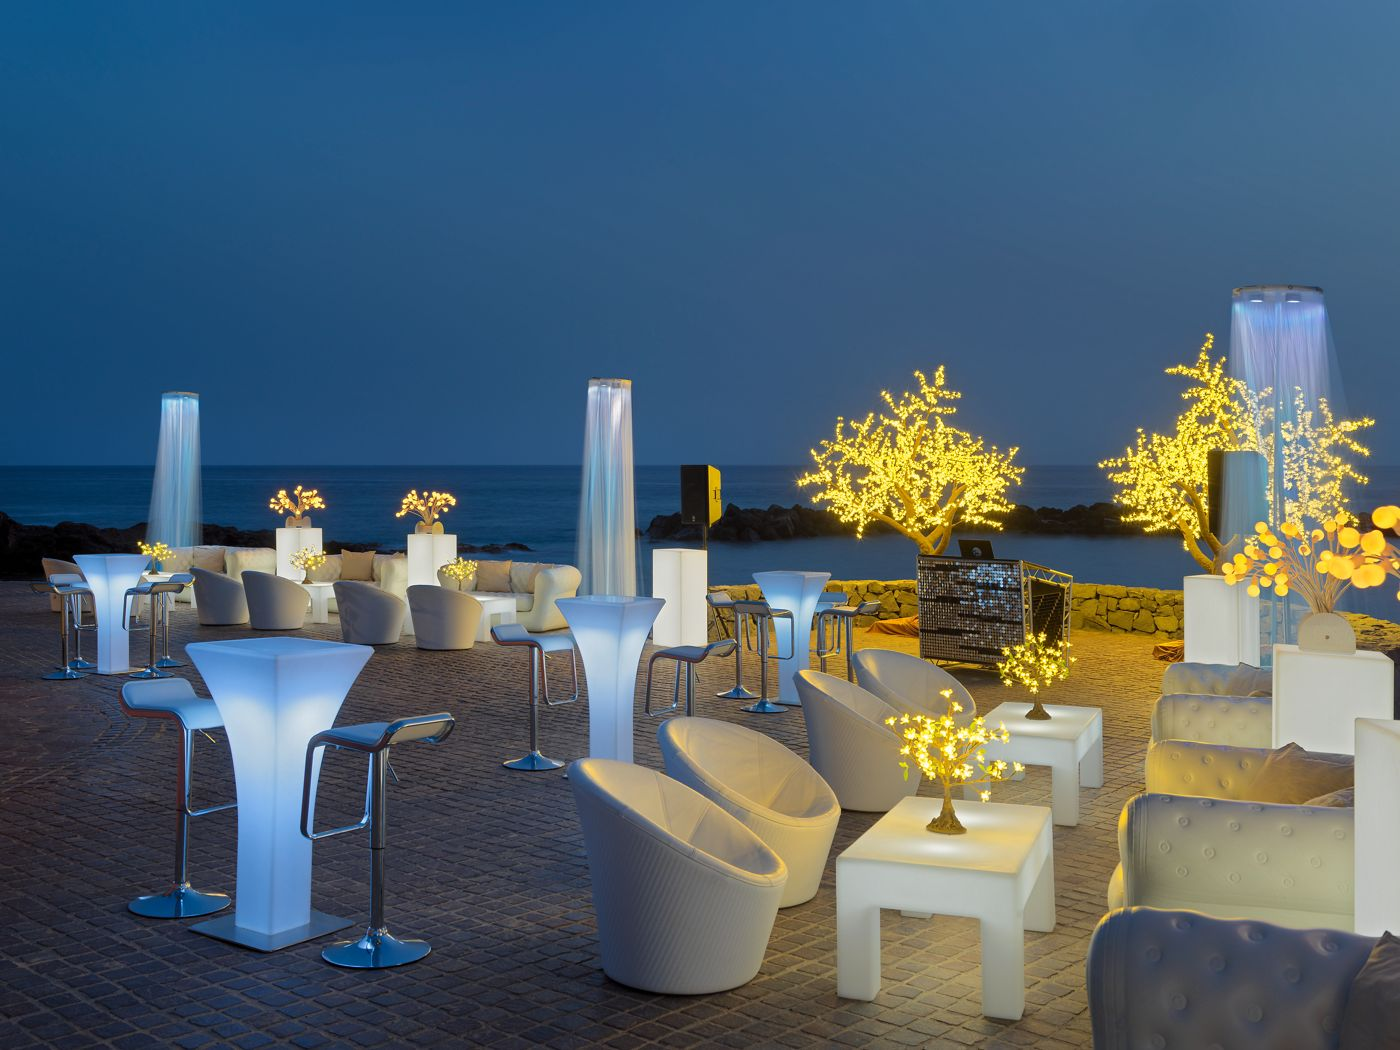 50550823-Beach Club terrace with Chill Out set up at night - natural light.jpeg